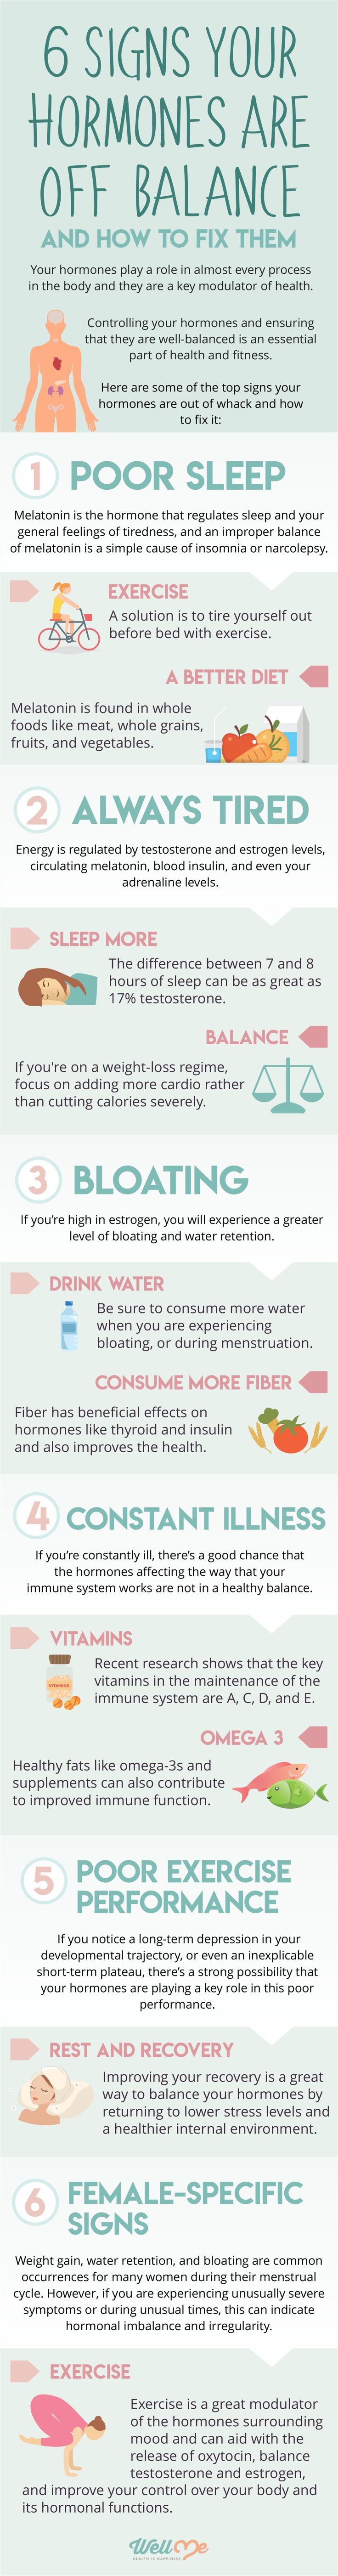 6 Signs Your Hormones Are Off Balance infographic